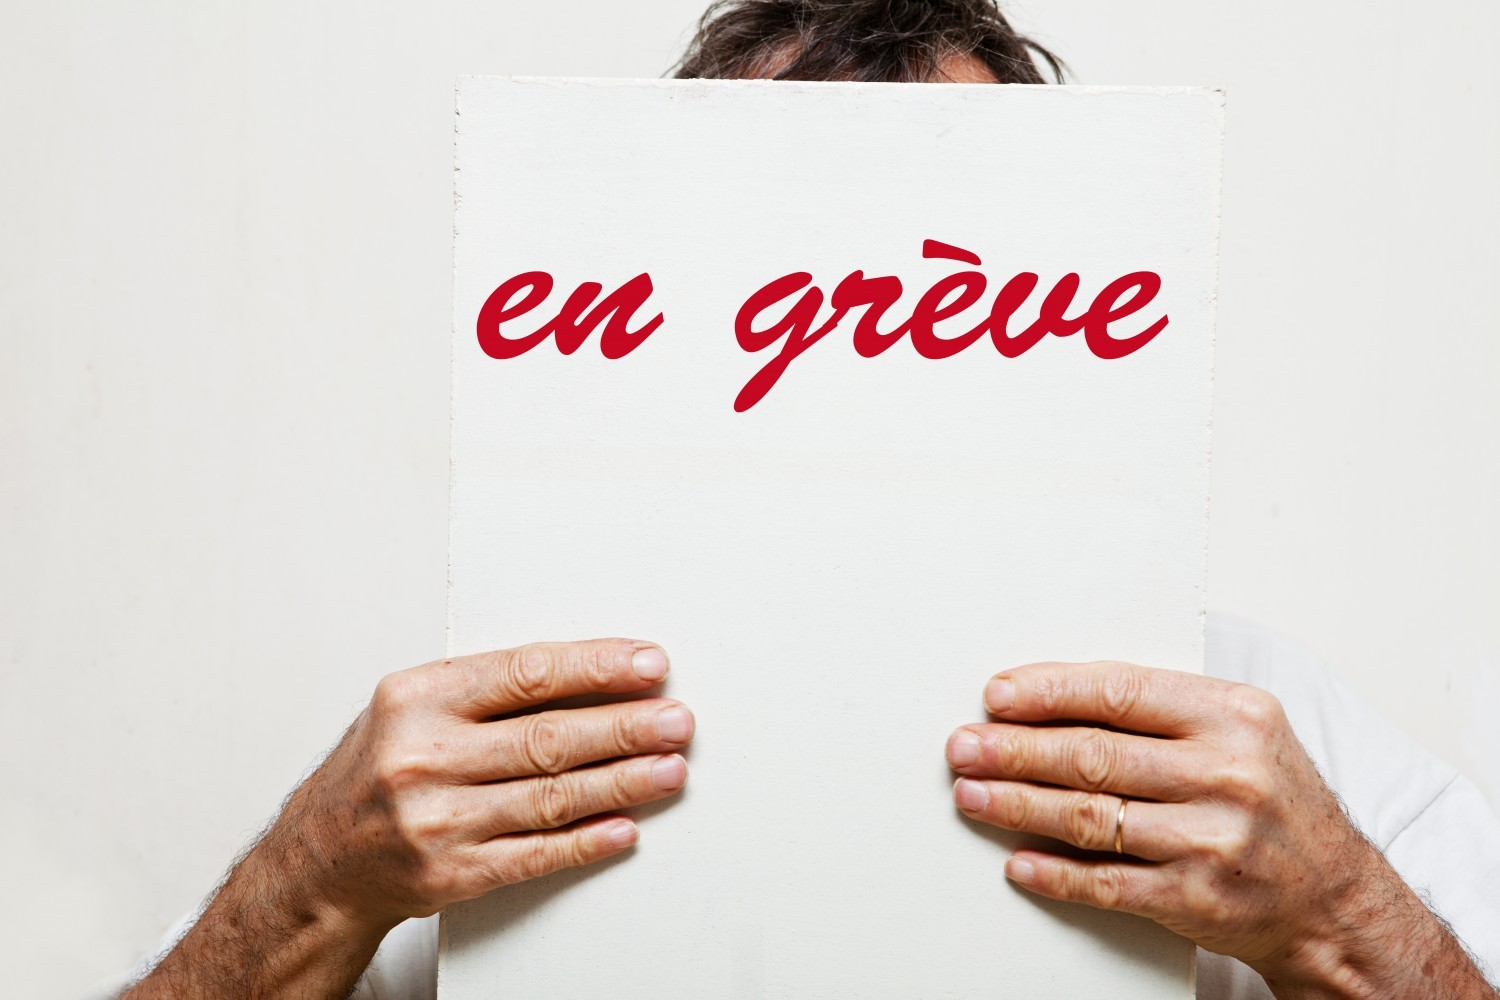 Grève du 26 janvier : 40 % de grévistes du 2nd degré selon les syndicats, 12,6 % selon le ministère